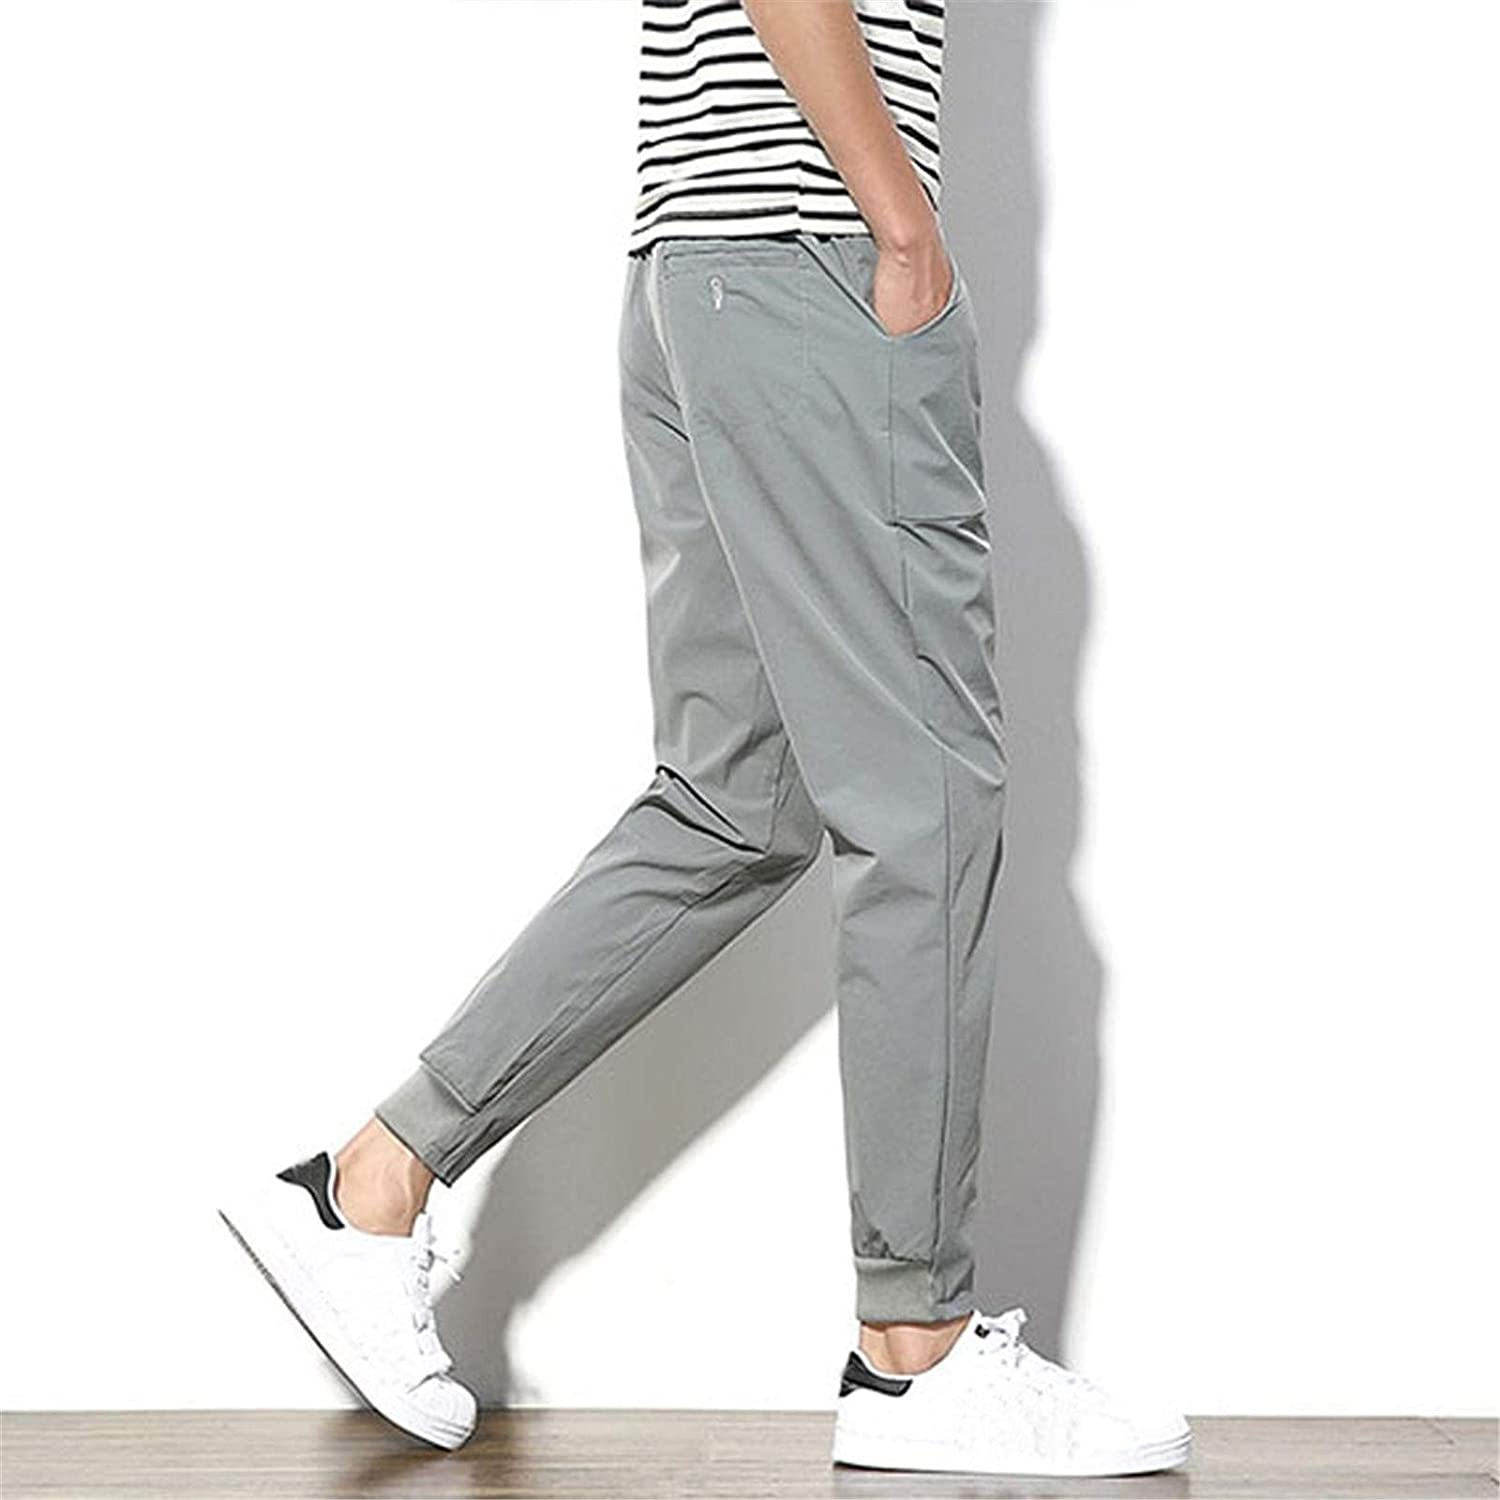 Solid Color Slim Fit Drawstring Straight Fit Pant Pocket Linen Long Trouser wodceeke Casual Pants for Men